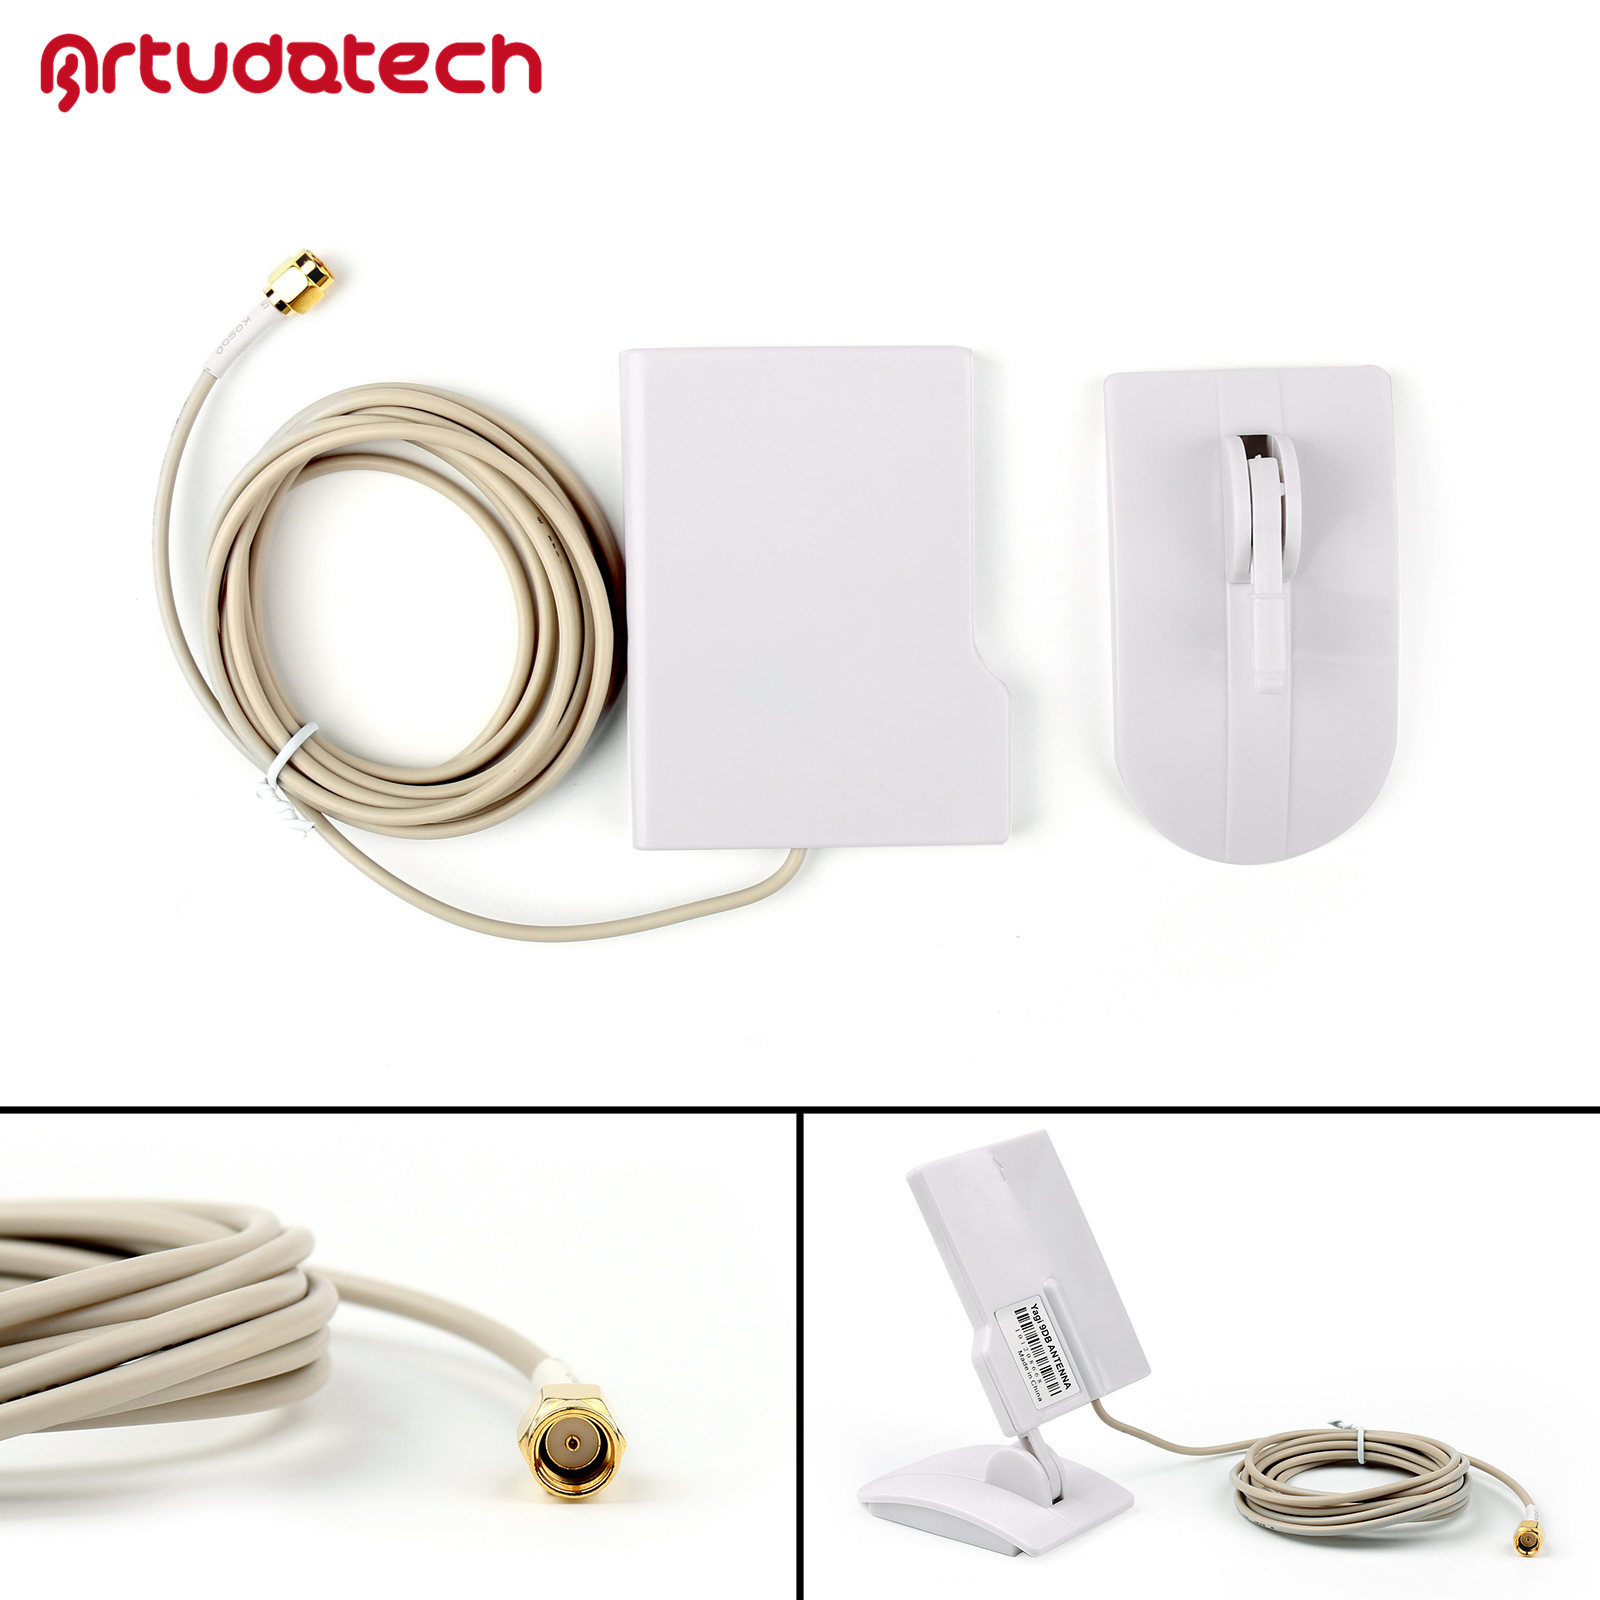 2.4GHz 9dBi Yagi Directional Antenna High Gain WIFI Router Booster w// Cable